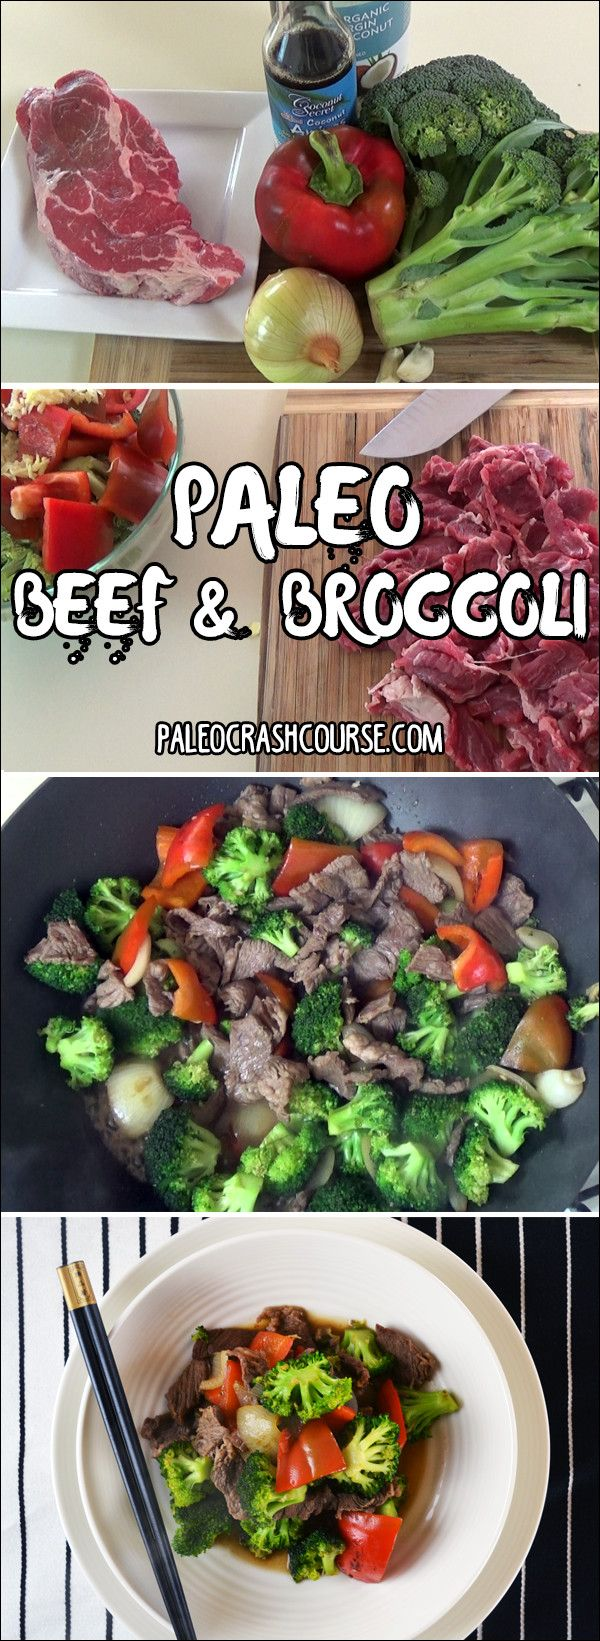 A yummy paleo friendly beef and broccoli stir fry!   http://paleocrashcourse.com/paleo-beef-and-broccoli/